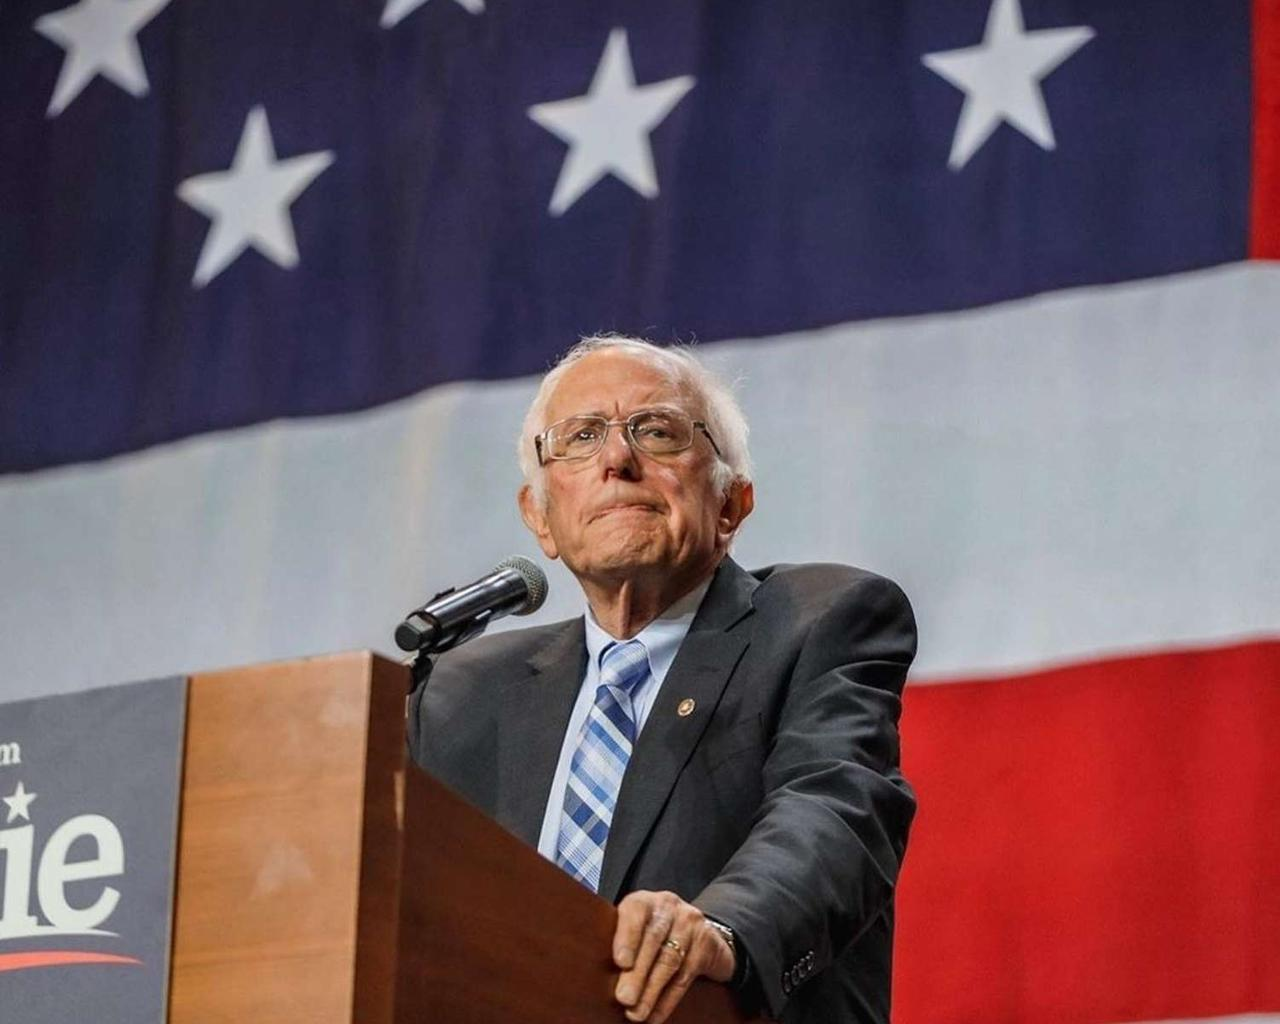 Bernie Sanders Slams Apple's USD 2.5 B Donation in California — Does He Have a Point?